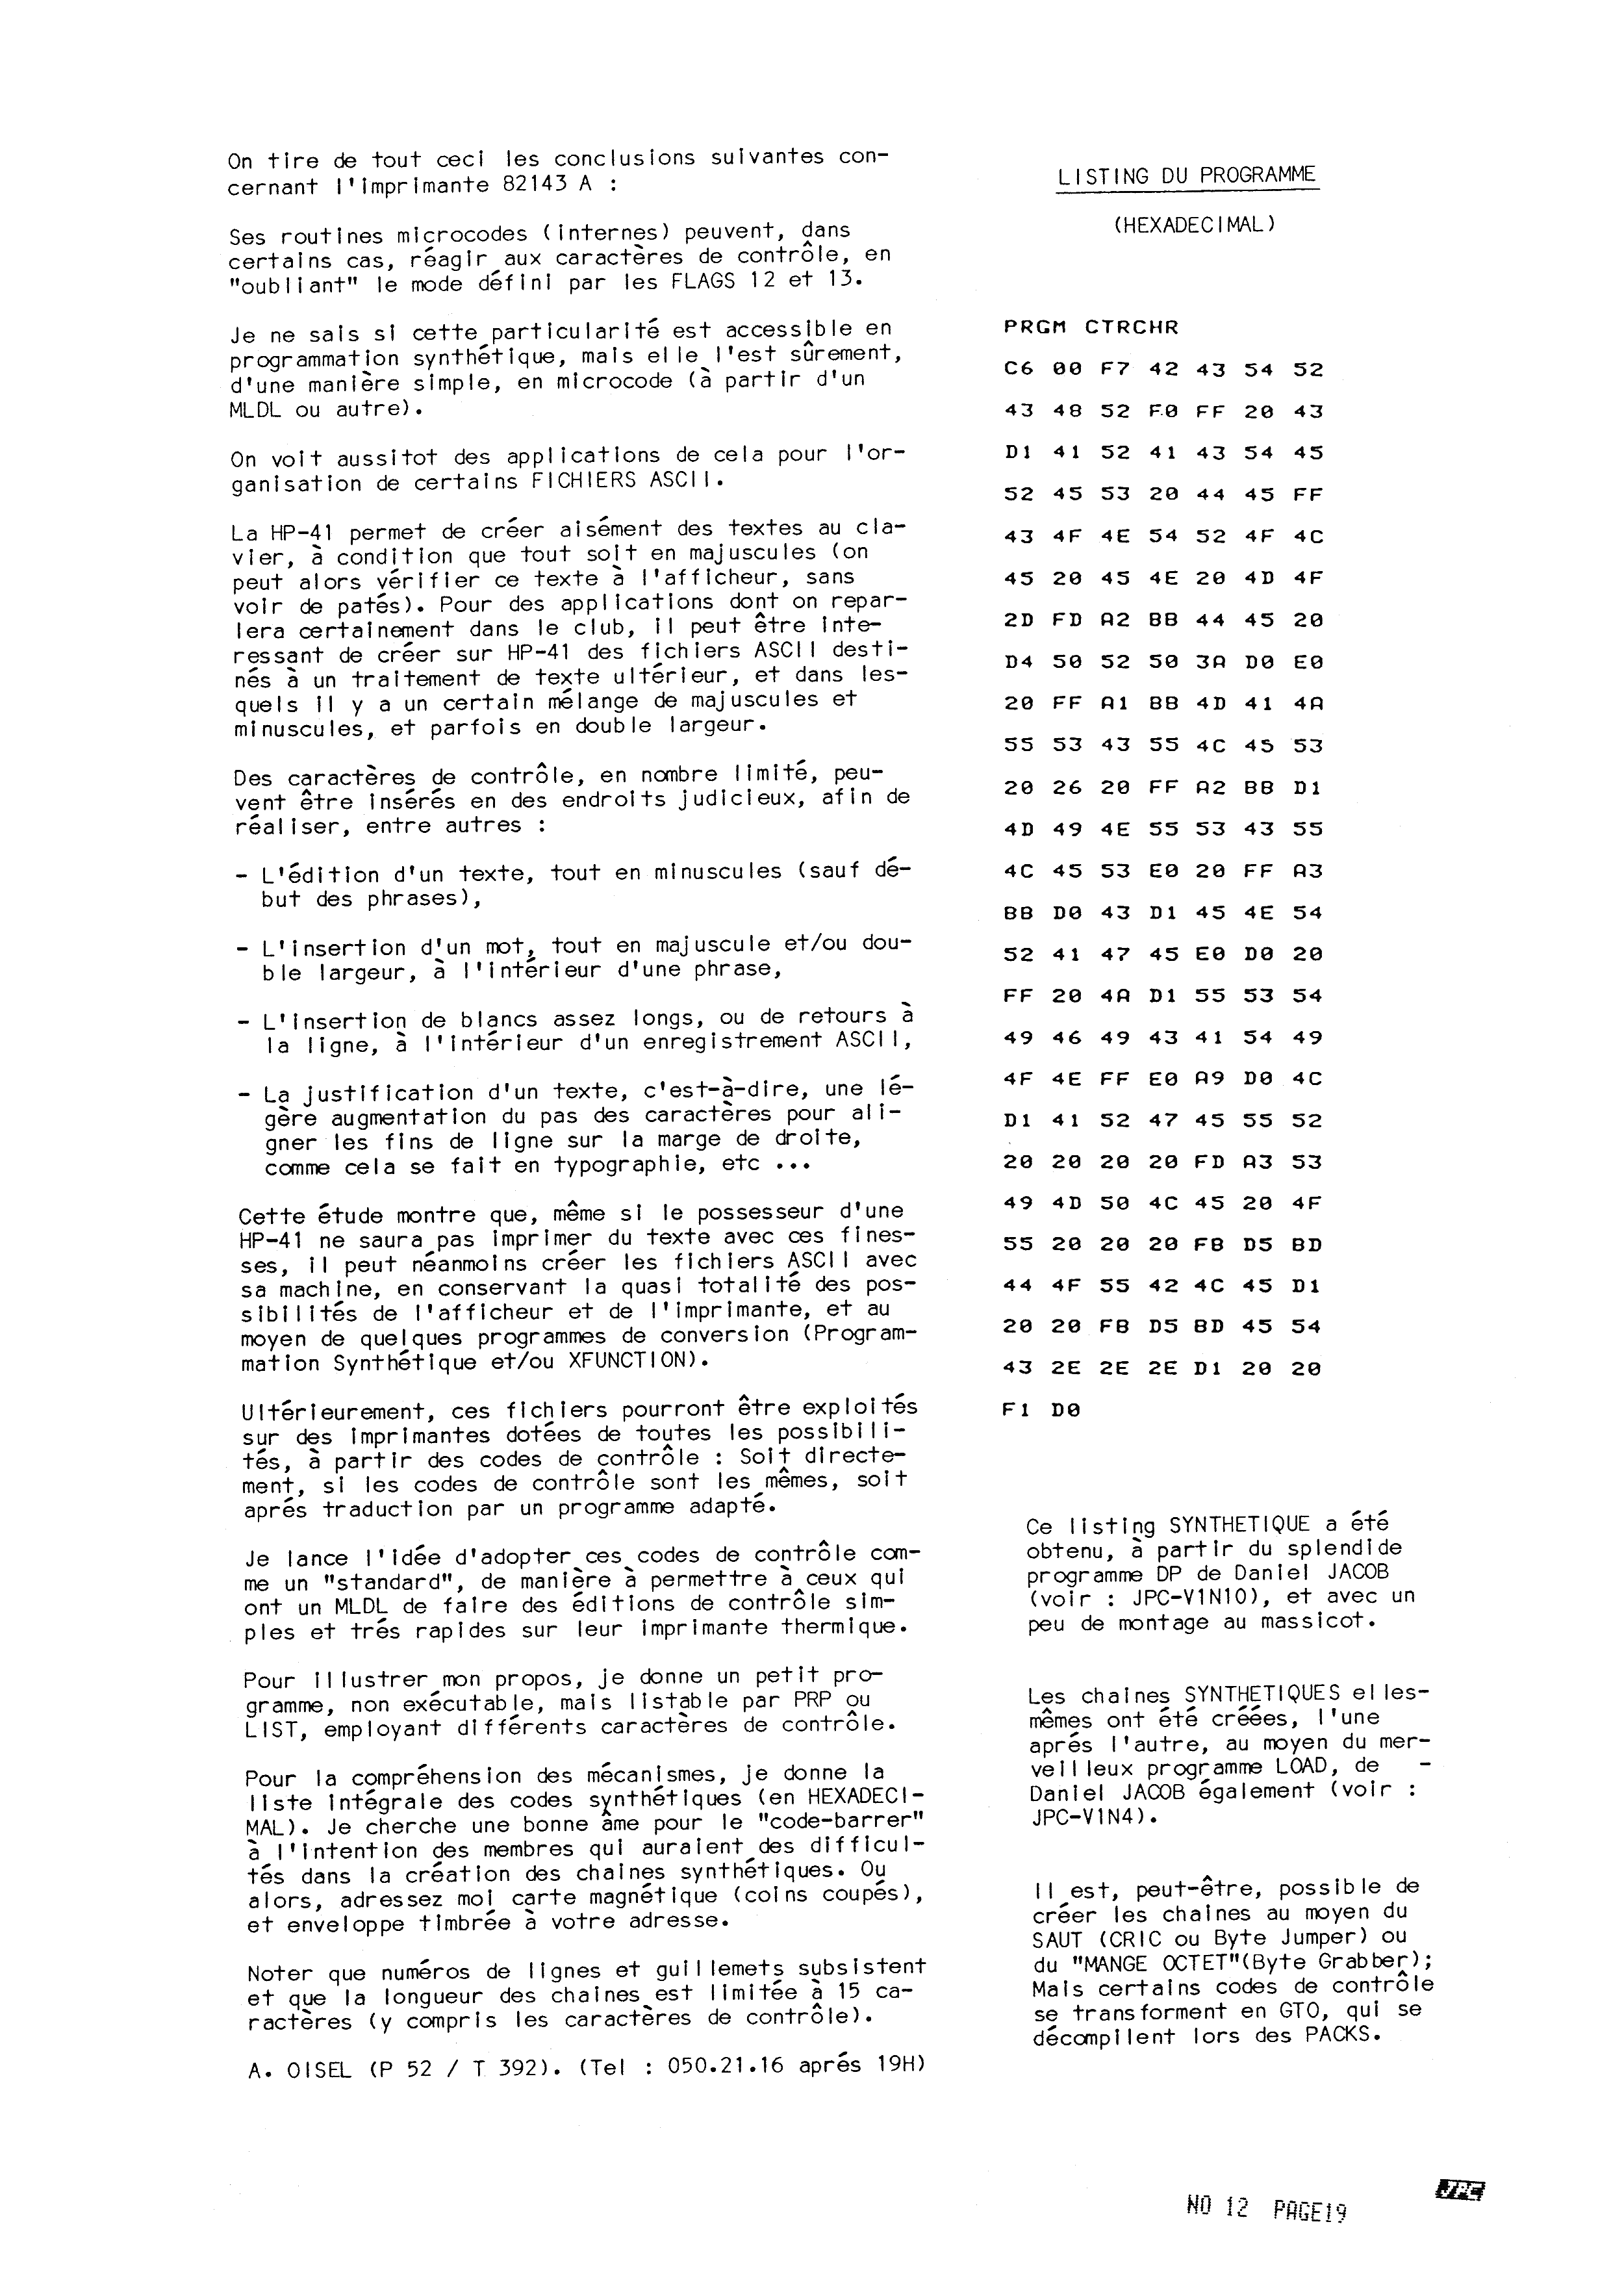 Jp-12-page-19-1000